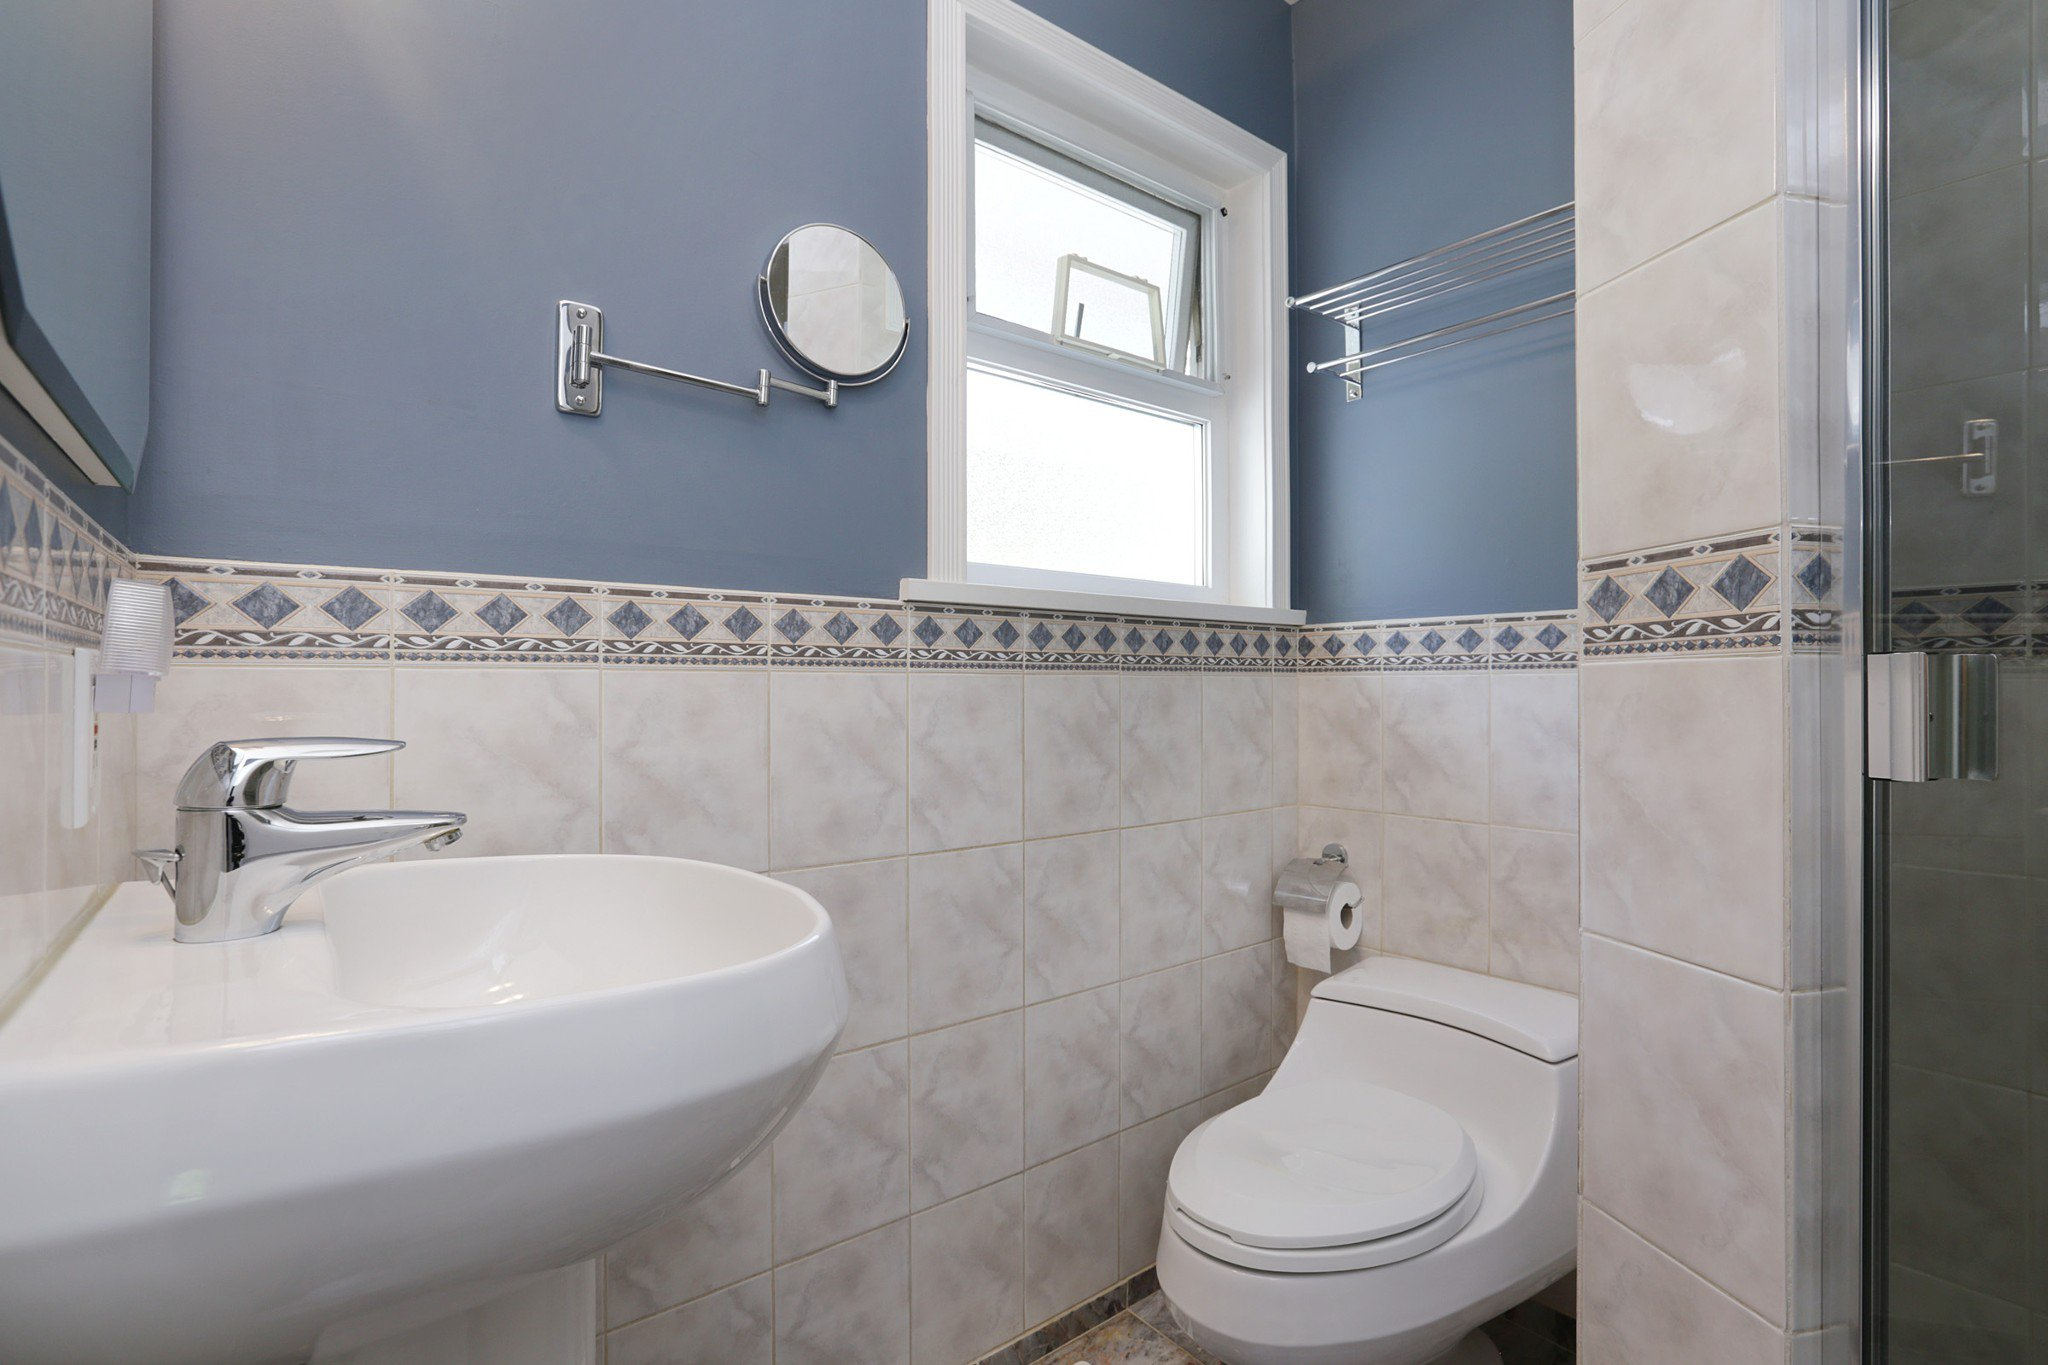 Photo 11: Photos: 372 VENTURA Crescent in North Vancouver: Upper Delbrook House for sale : MLS®# R2284717